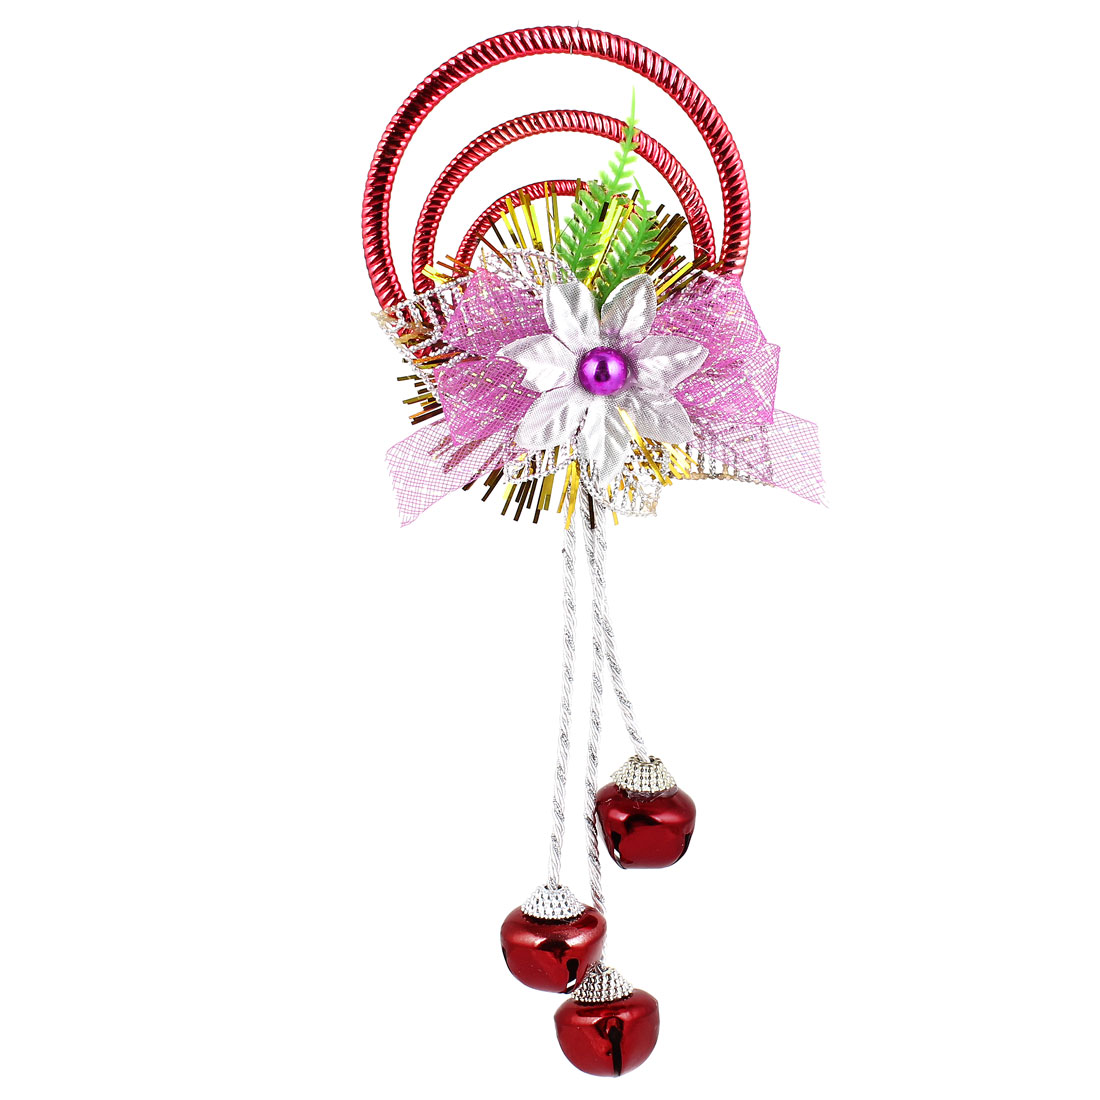 Bowknot Flowers Detail Plastic Rings Metal Bell Pendant Burgundy for Christmas Xmas Tree Decor